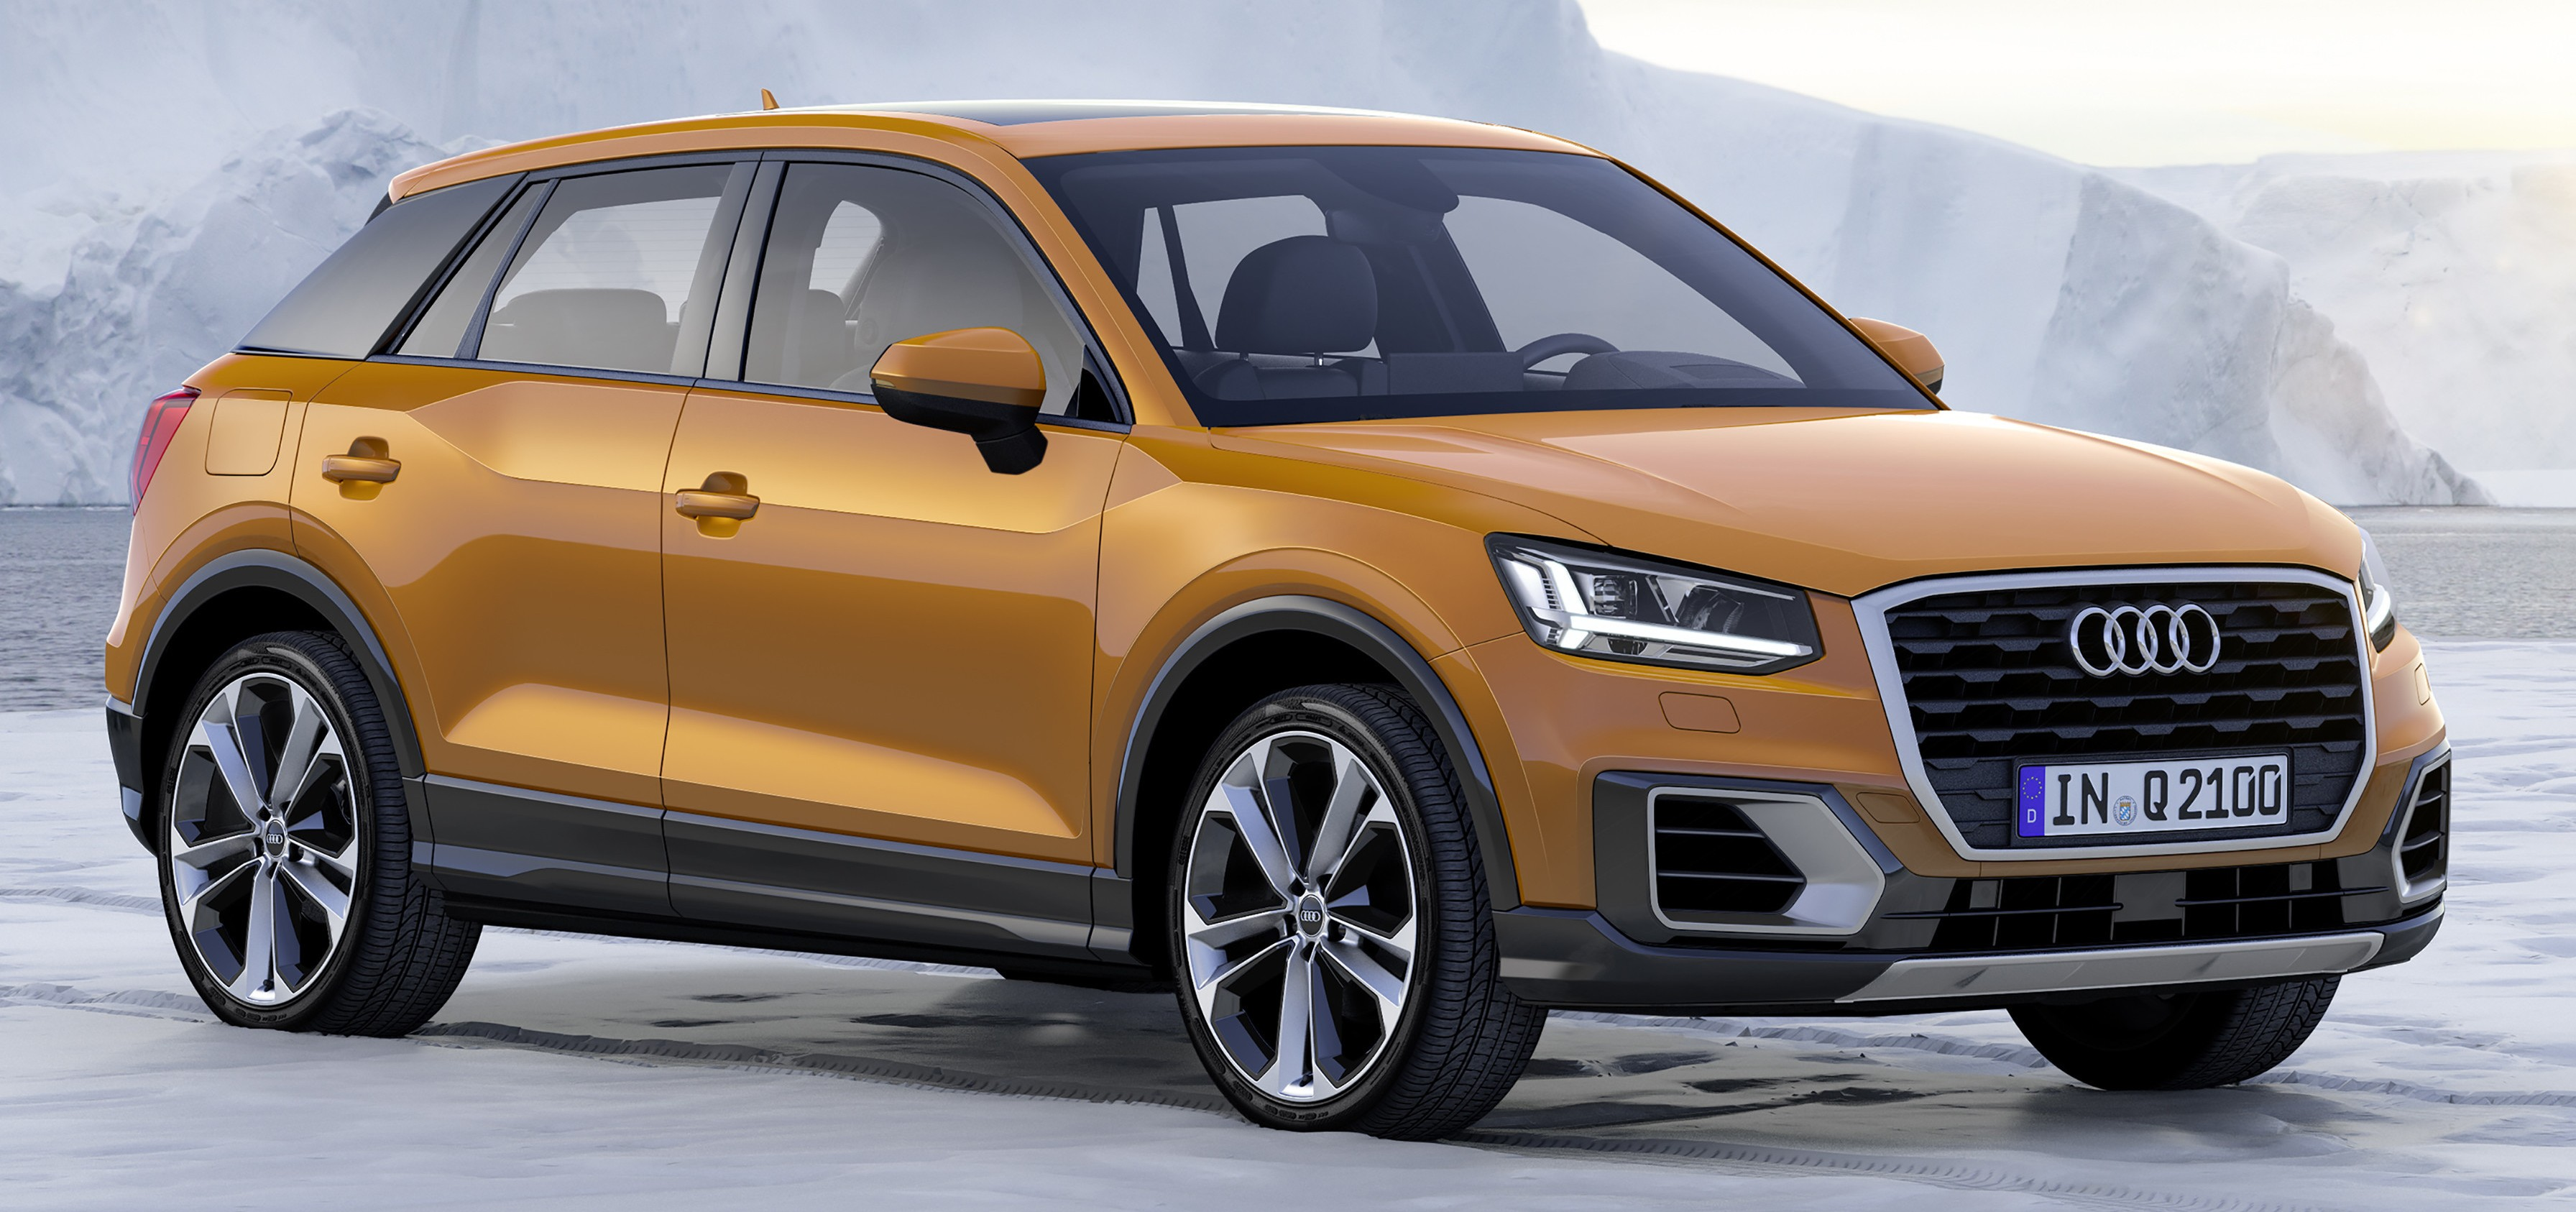 Audi Q2 New Compact Crossover Debuts In Geneva Image 451866